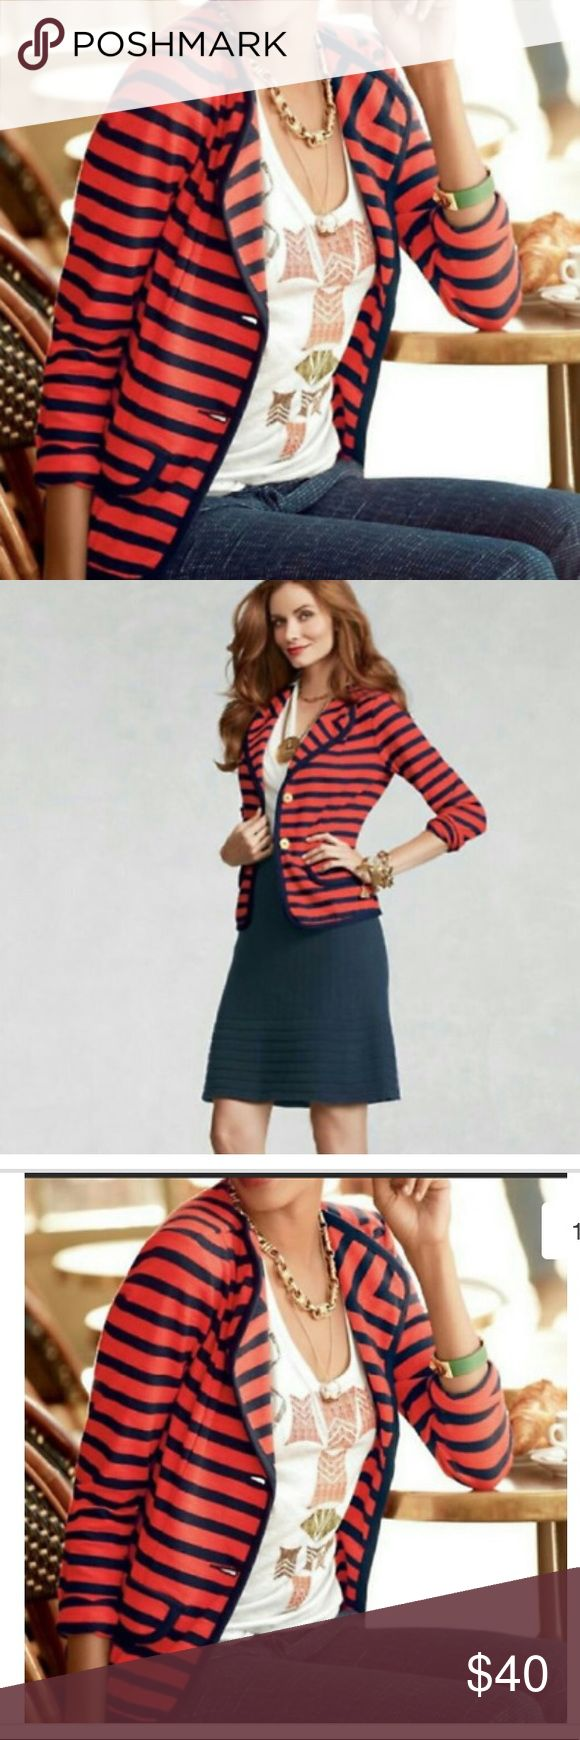 Cabi yacht club striped jacket/blazer! Cabi red and navy blue striped jacket/blazer! Size medium! Excellent condition! Gold front buttons and faux pockets on the front! I love this! 24.5 inches long. Bust measuring across the front 18 inches. CAbi Jackets & Coats Blazers